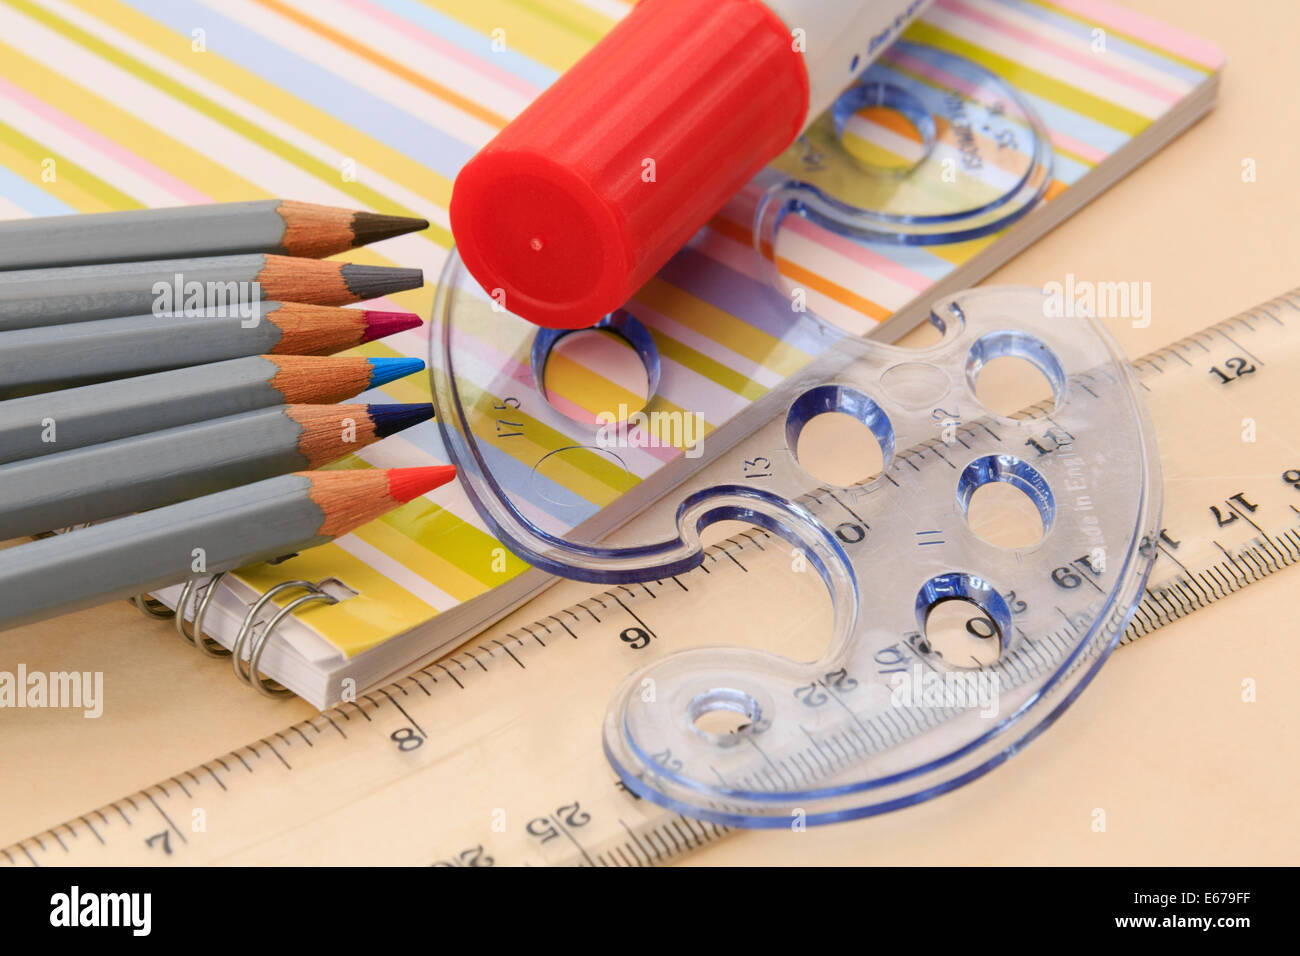 Educational drawing equipment notebook, coloured pencils, glue stick, ruler and geometric shapes stencil on a desktop - Stock Image